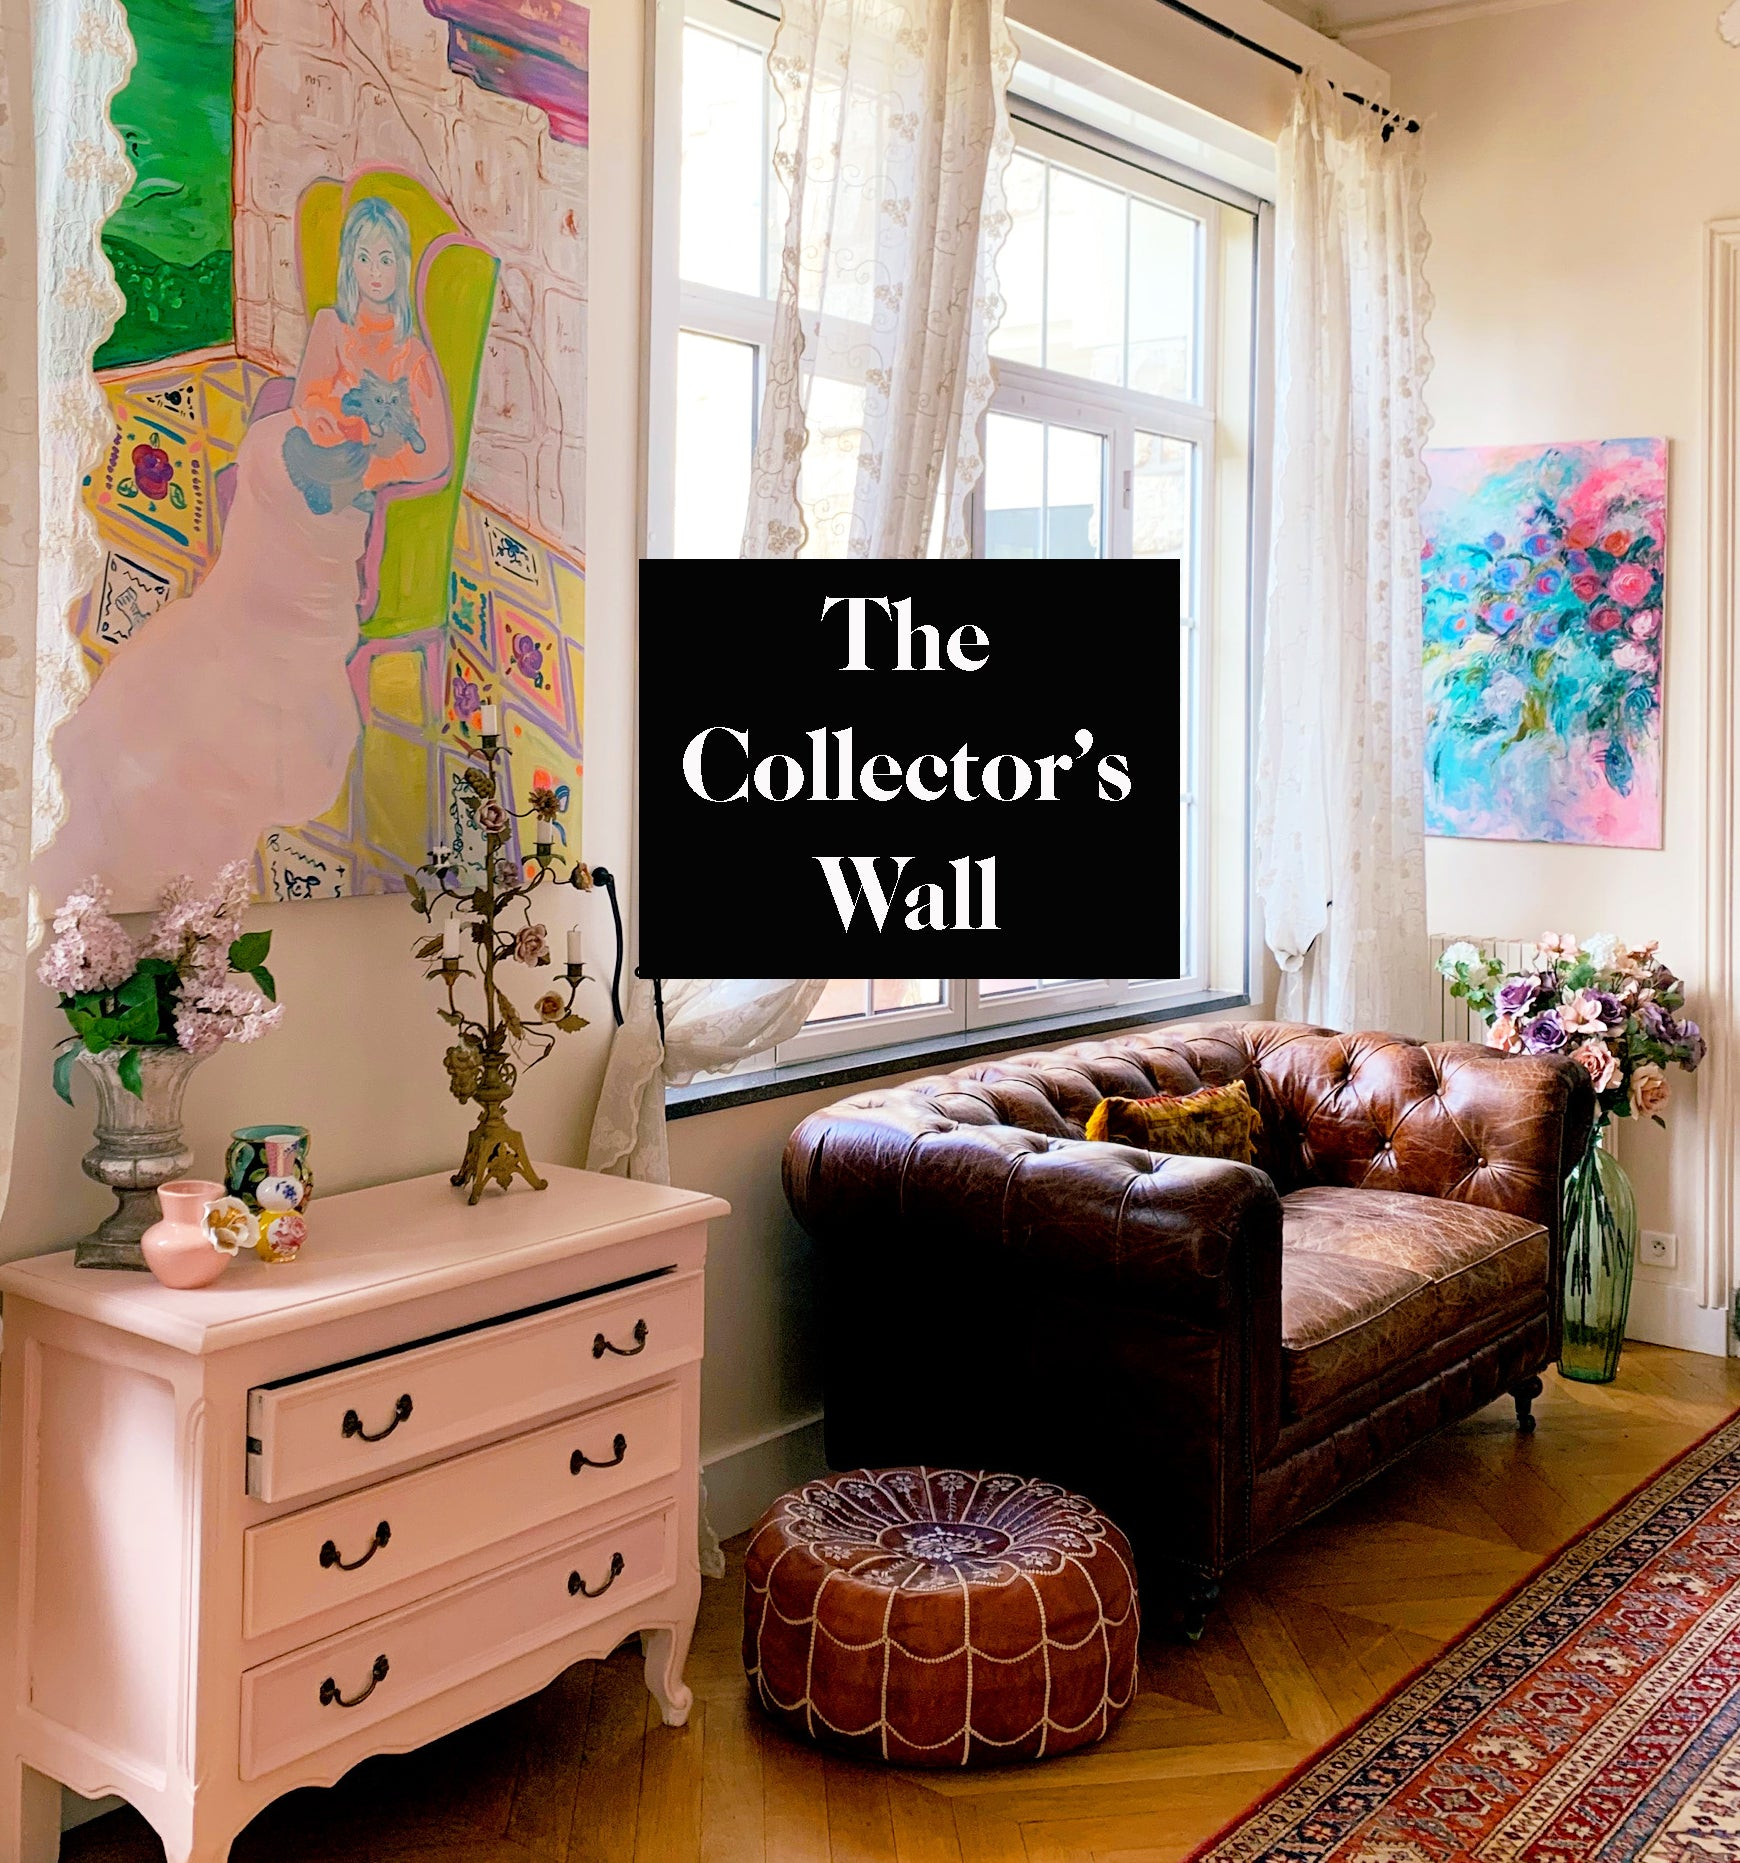 The Collector's Wall